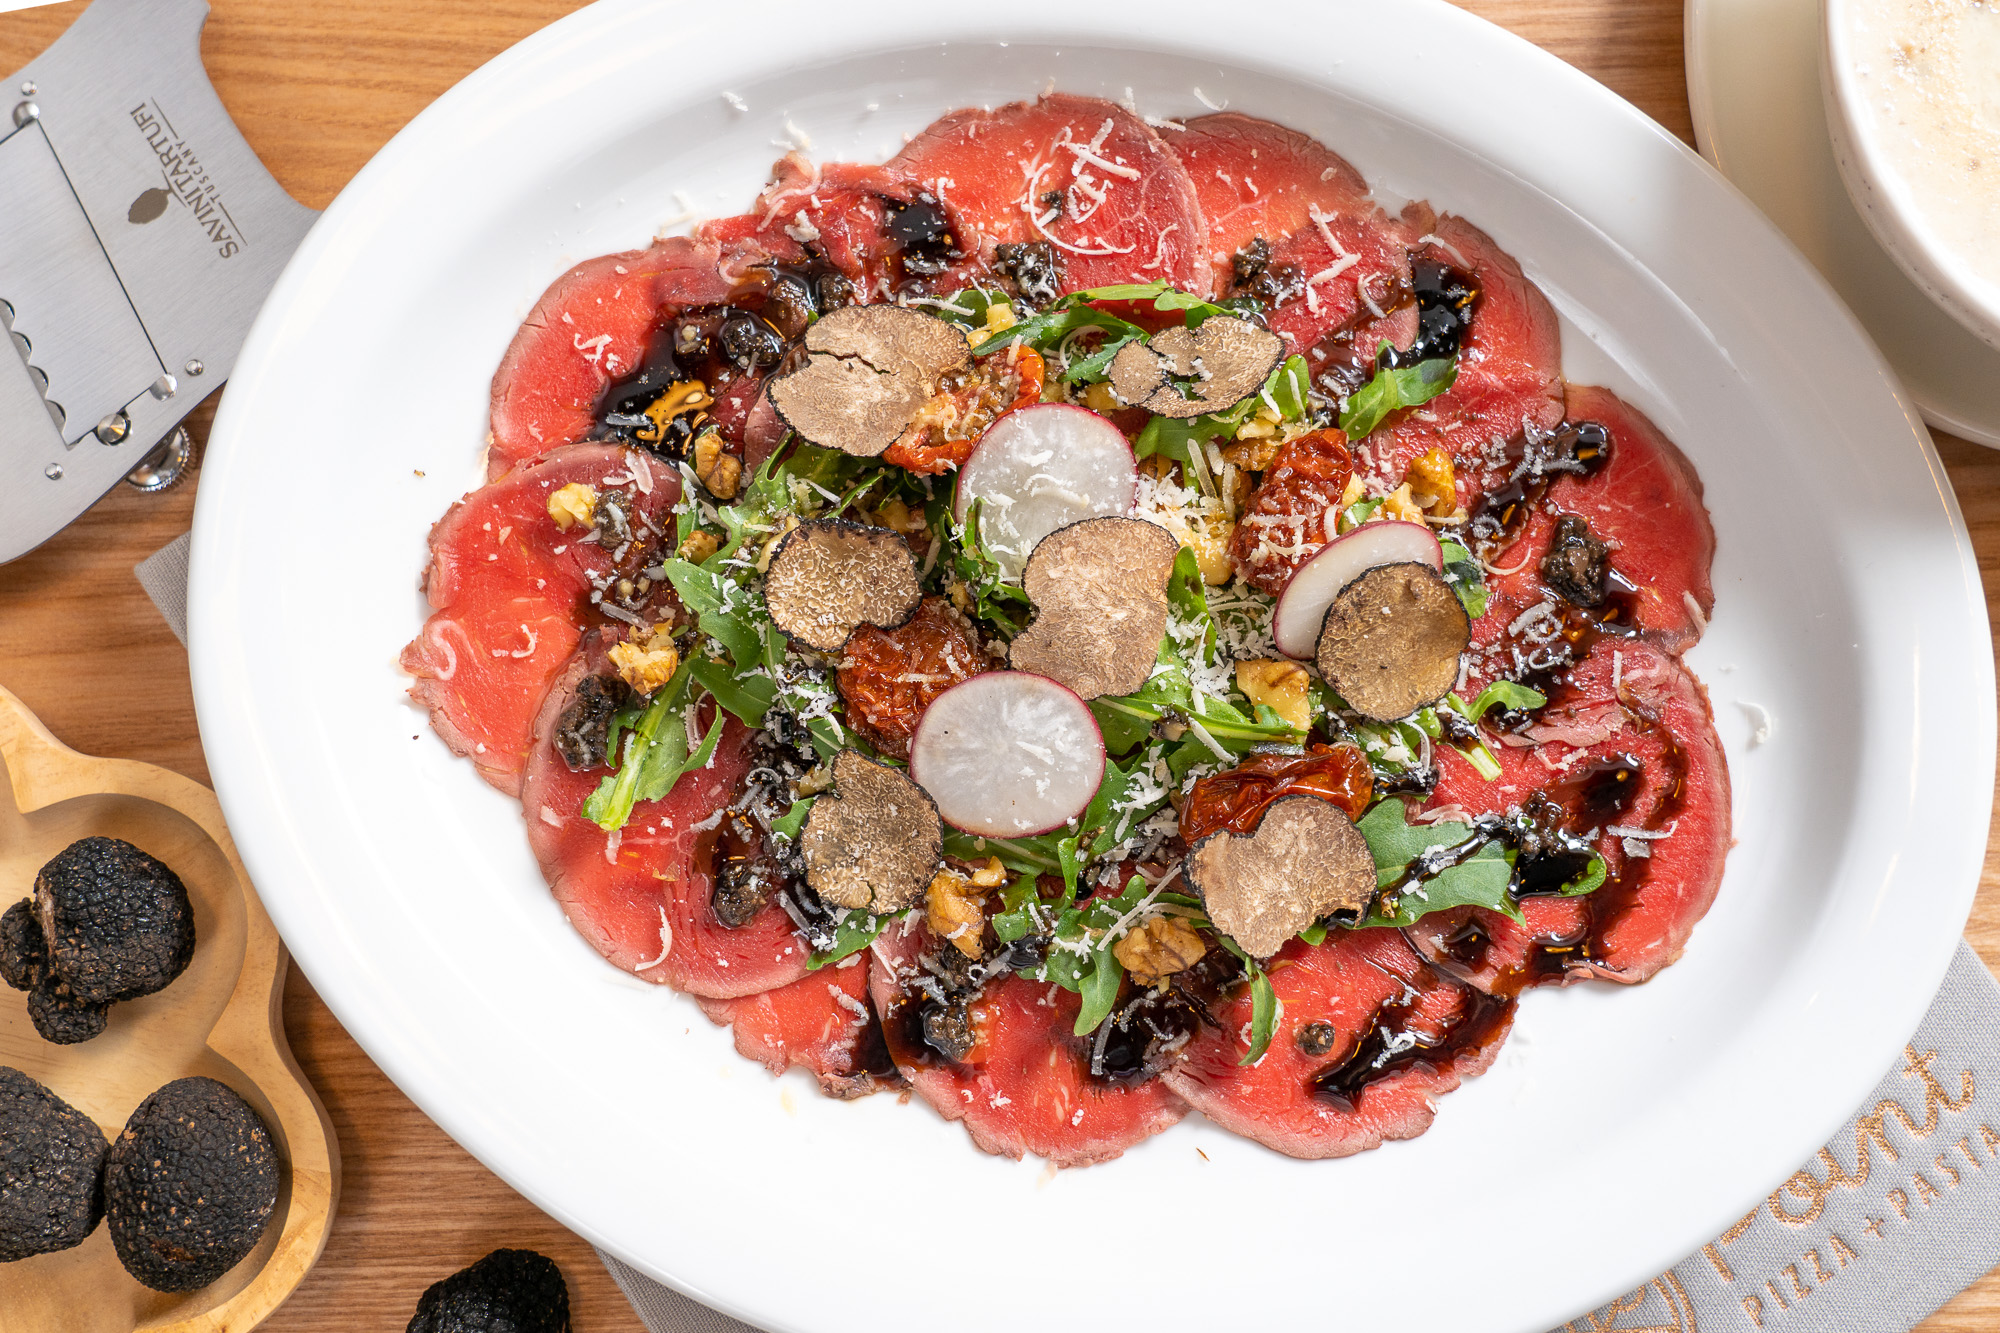 Beef Carpaccio with Black Truffle and Arugula Salad